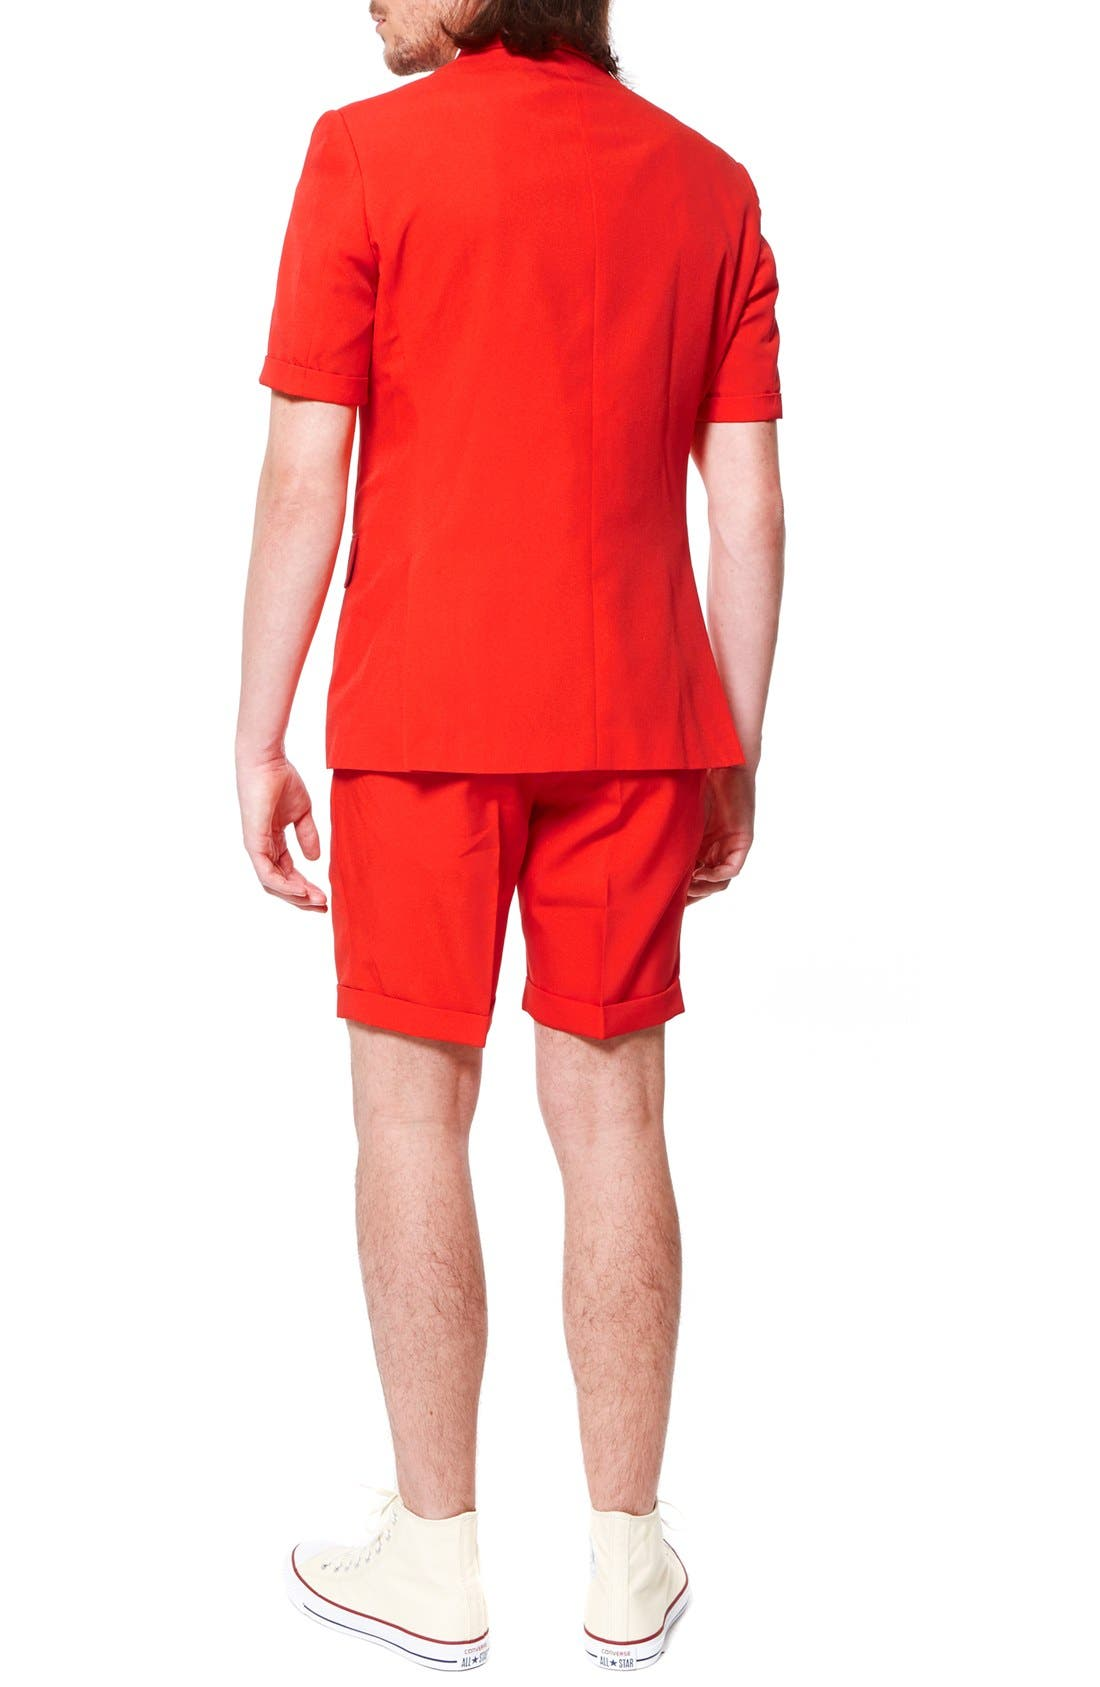 'Summer Red Devil' Trim Fit Short Suit with Tie,                             Alternate thumbnail 2, color,                             Medium Red